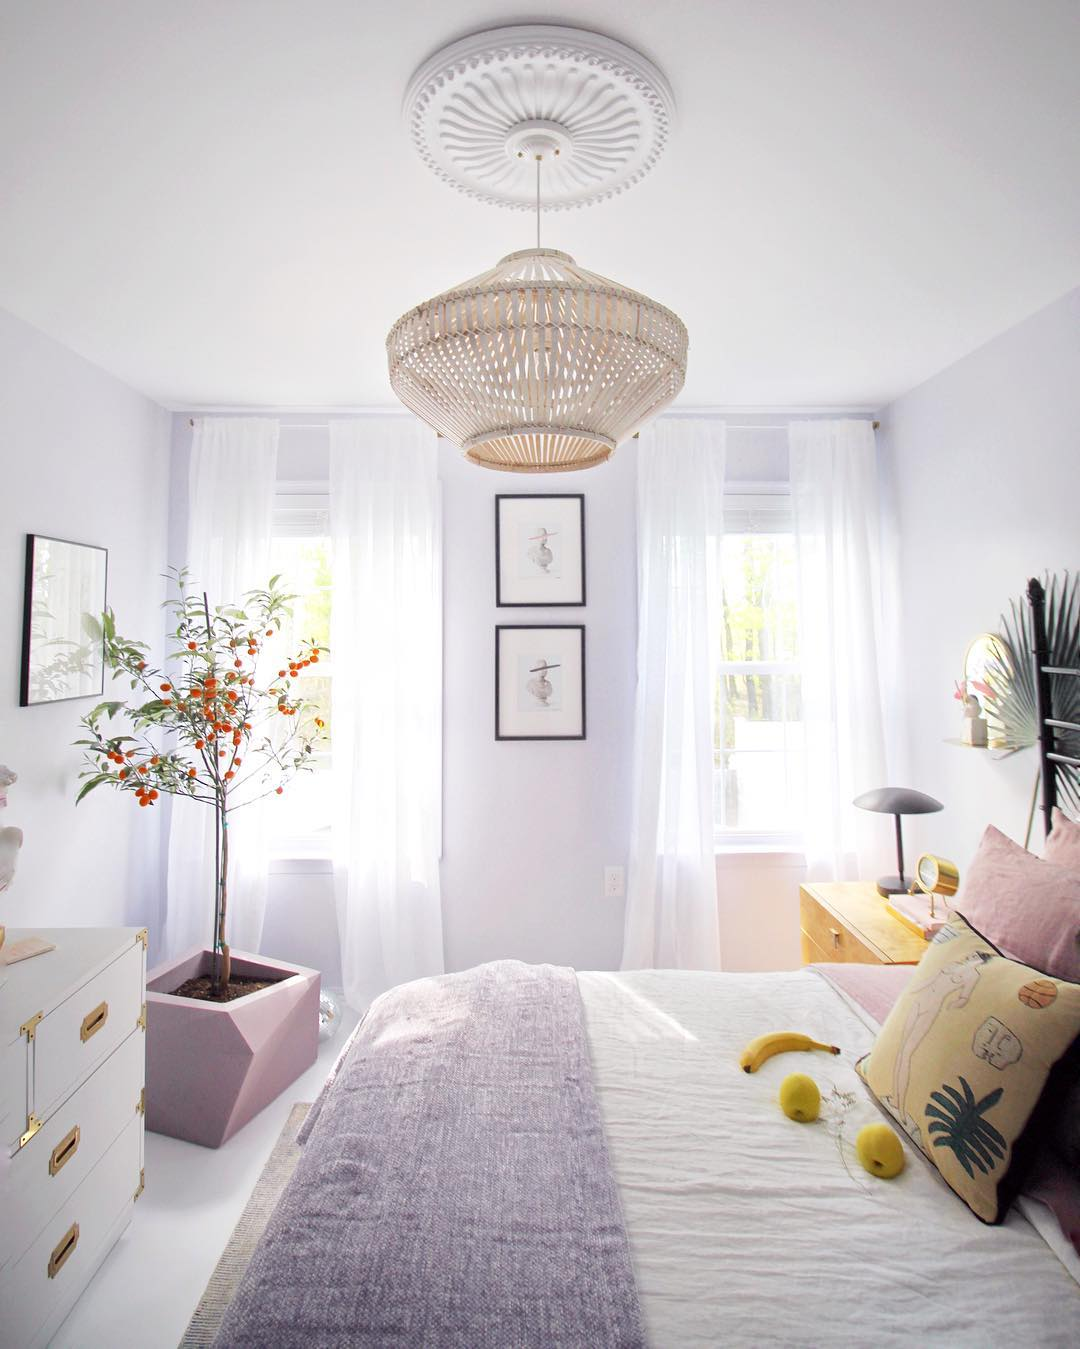 This Charming Bedroom Epitomizes Springtime Vibes